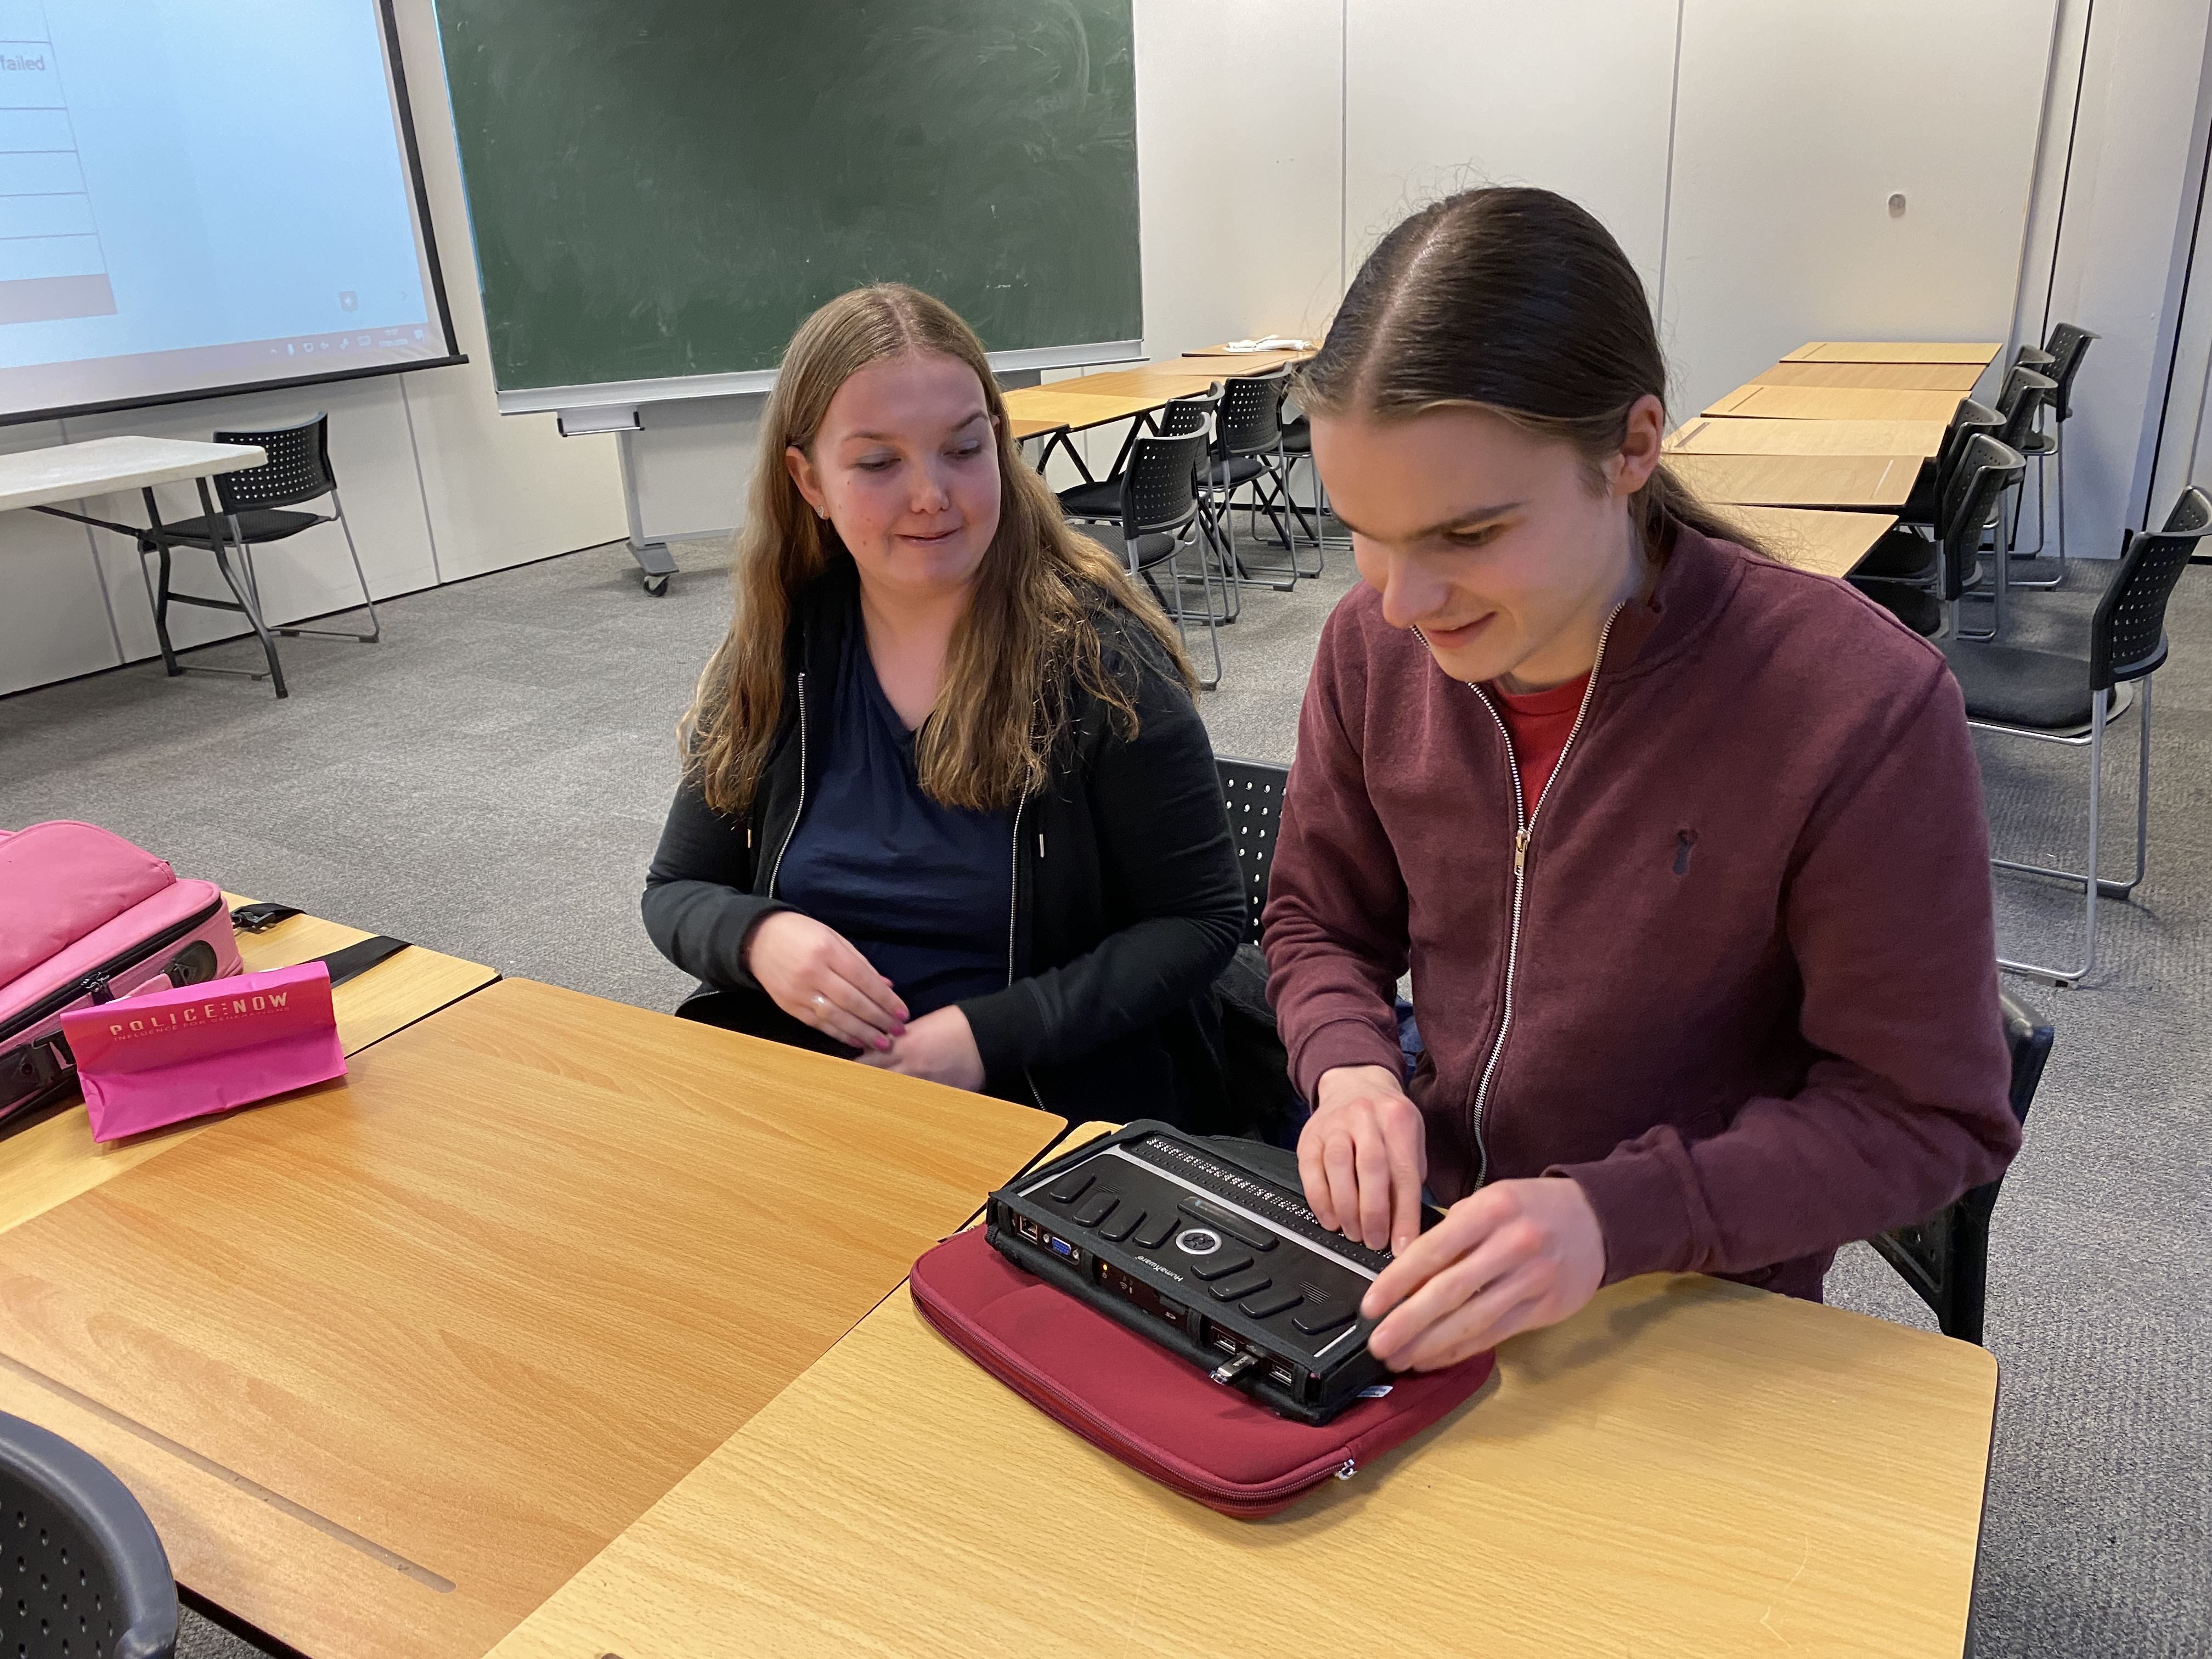 A female VI student looking on as the male VI student tries out her braille machine.